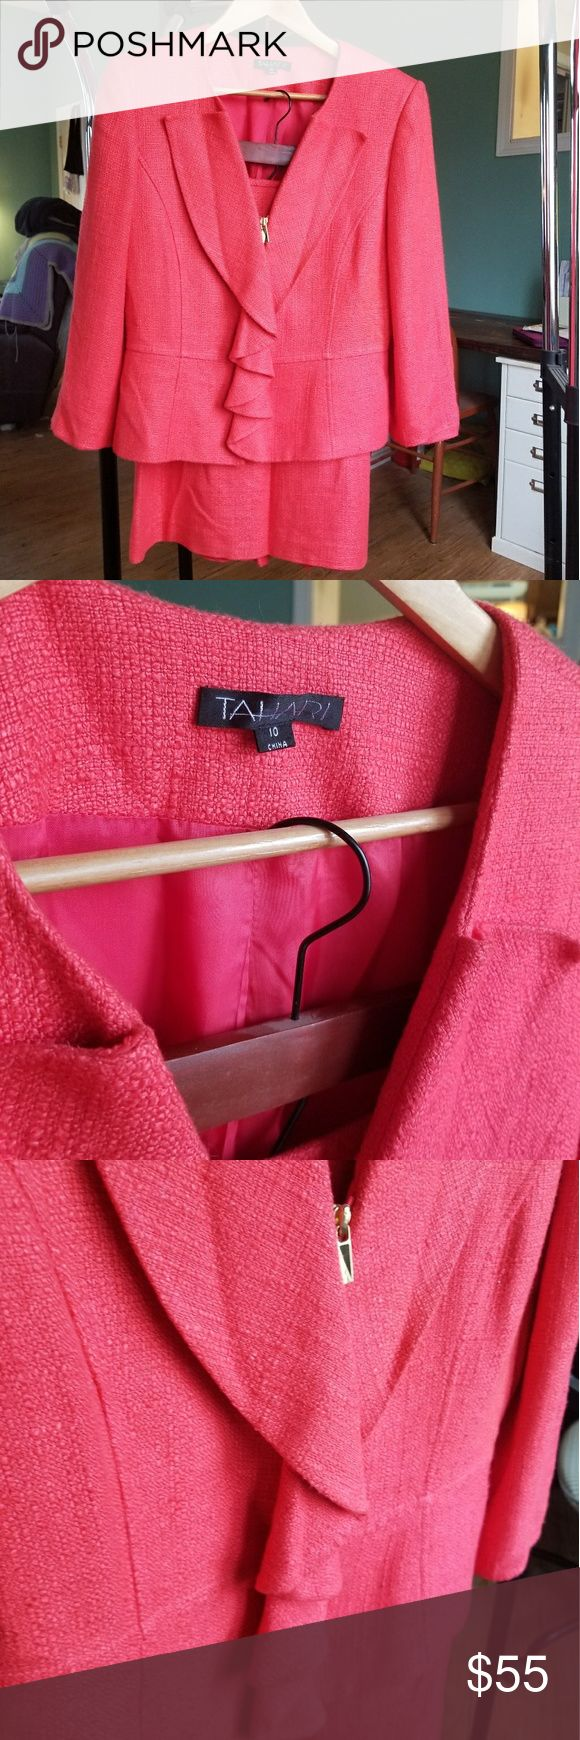 """Modern Coral Wool Tahari Skirt Suit This suit is a stunner! Bright, modern, and feminine it really stands out for all the right reasons! A nice soft wool, and not as bright in person--more orange in person. High quality, well made suit. Does have normal wear, but well loved and taken care of.  Zipper front, no pockets. Tahari, size 10.   Measurements from flat:  Blazer: Bust 18½"""" /  Waist 17½"""" / Length 21½"""" Skirt: Waist 16"""" / Hip 19½"""" / Length 24¾"""" From a pet friendly & smoke free home…"""